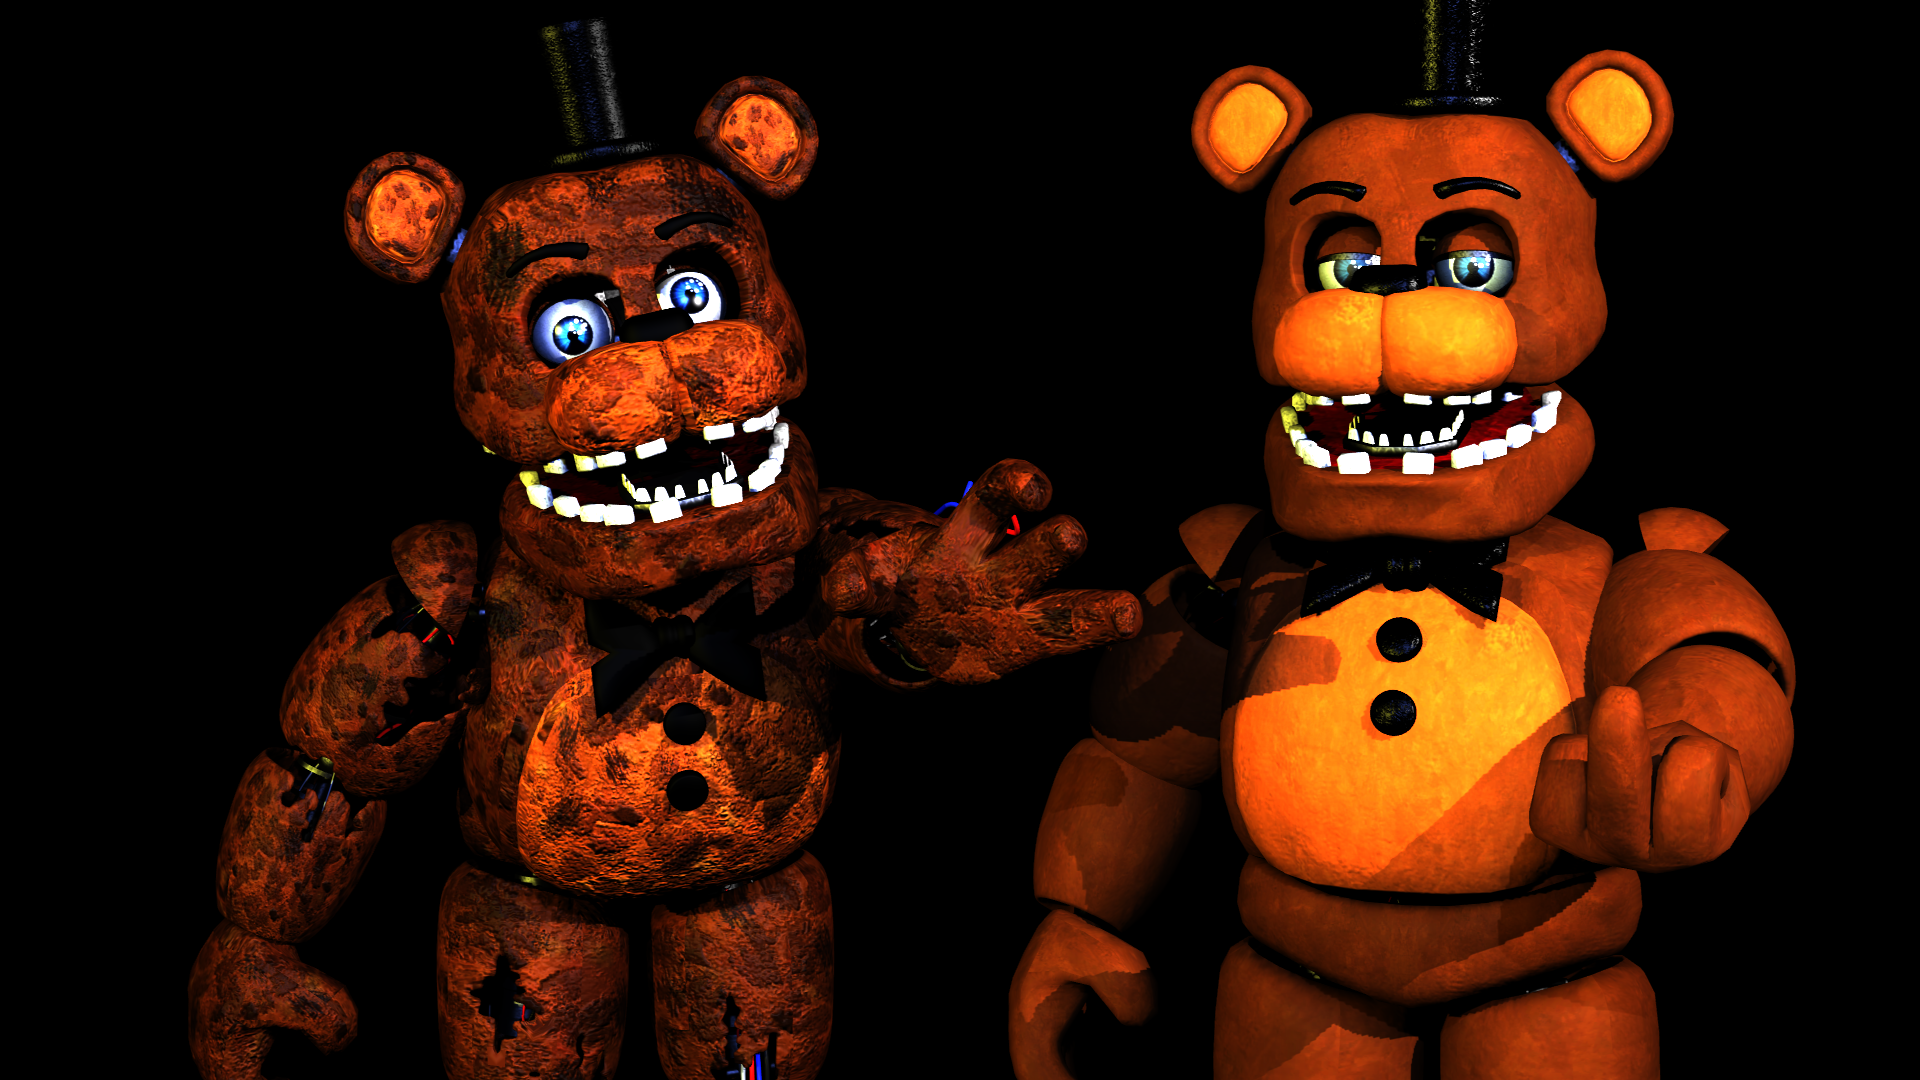 Steam Workshop Late Leakmas Rynfox Withered Freddy Lol Withered freddy vs withered bonnie fnaf | minecraft five nights at freddy's roleplay. rynfox withered freddy lol